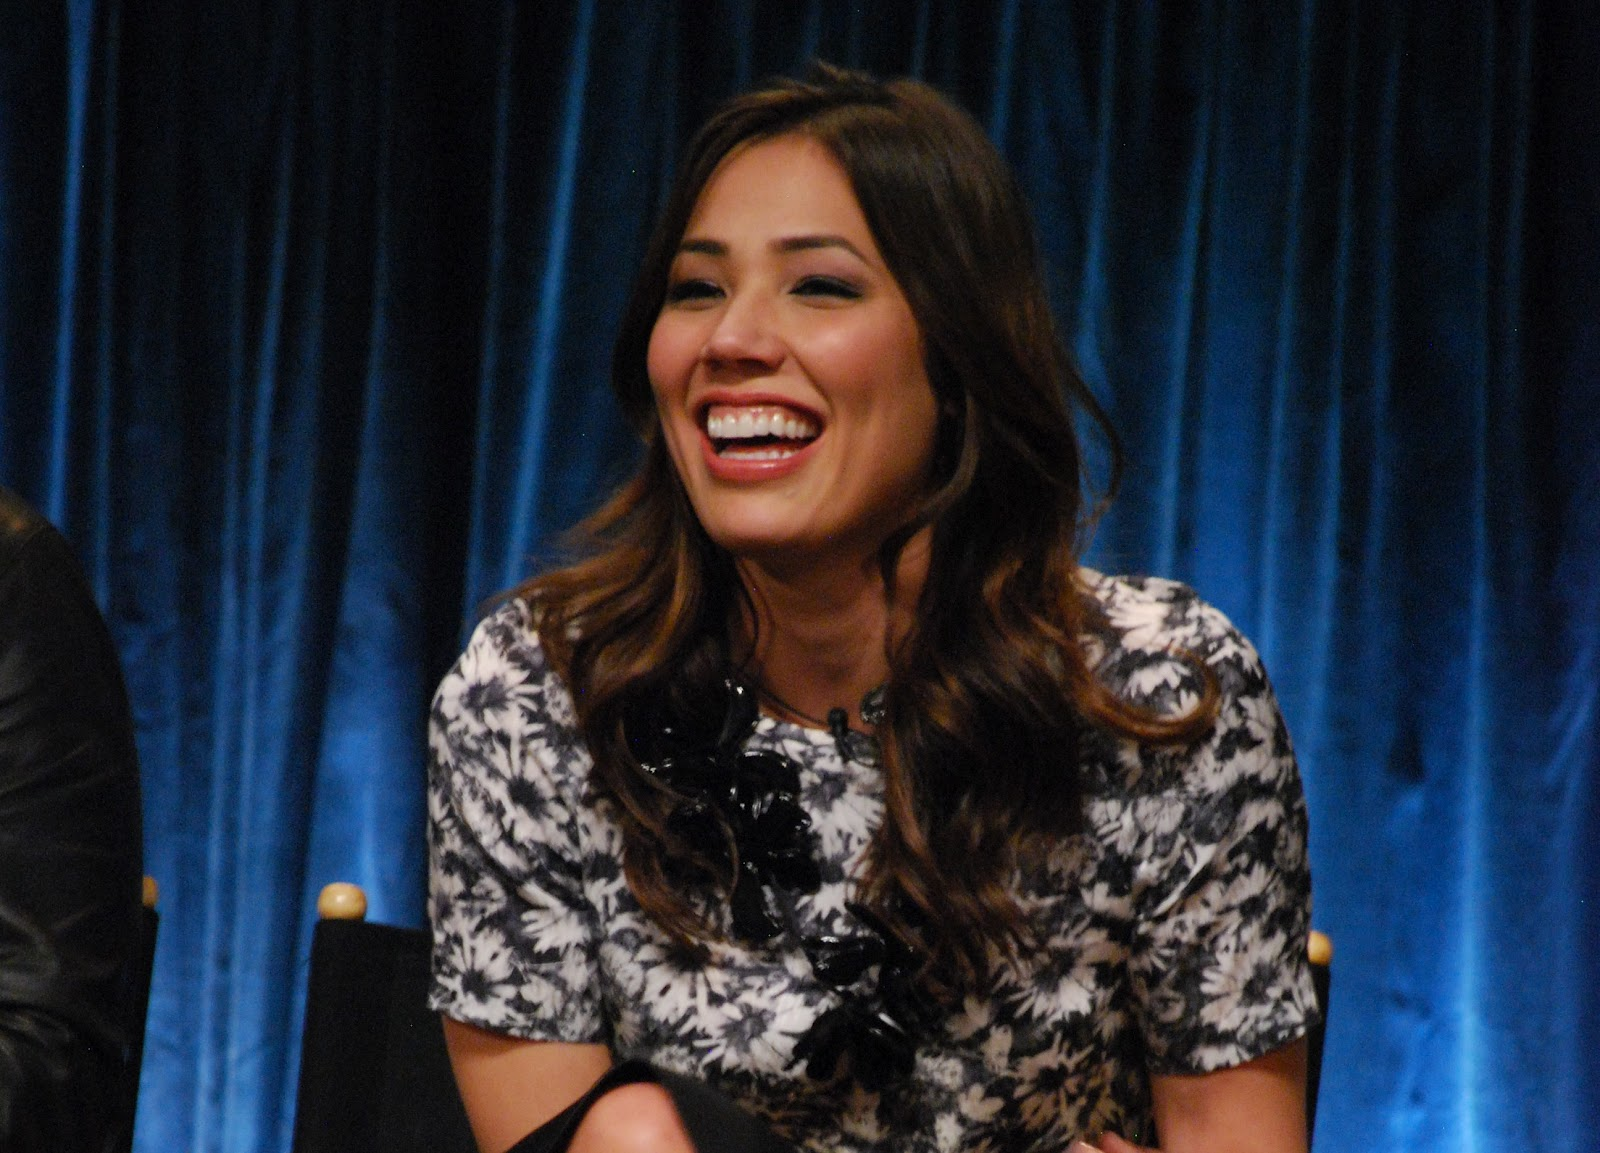 michaela conlin babymichaela conlin family, michaela conlin father, michaela conlin and husband, michaela conlin zimbio, michaela conlin height weight, michaela conlin foto, michaela conlin photoshoot, michaela conlin baby, michaela conlin instagram, michaela conlin married, michaela conlin boyfriend, michaela conlin 2016, michaela conlin official instagram, michaela conlin, michaela conlin partner, michaela conlin enchanted, michaela conlin facebook, michaela conlin 2015